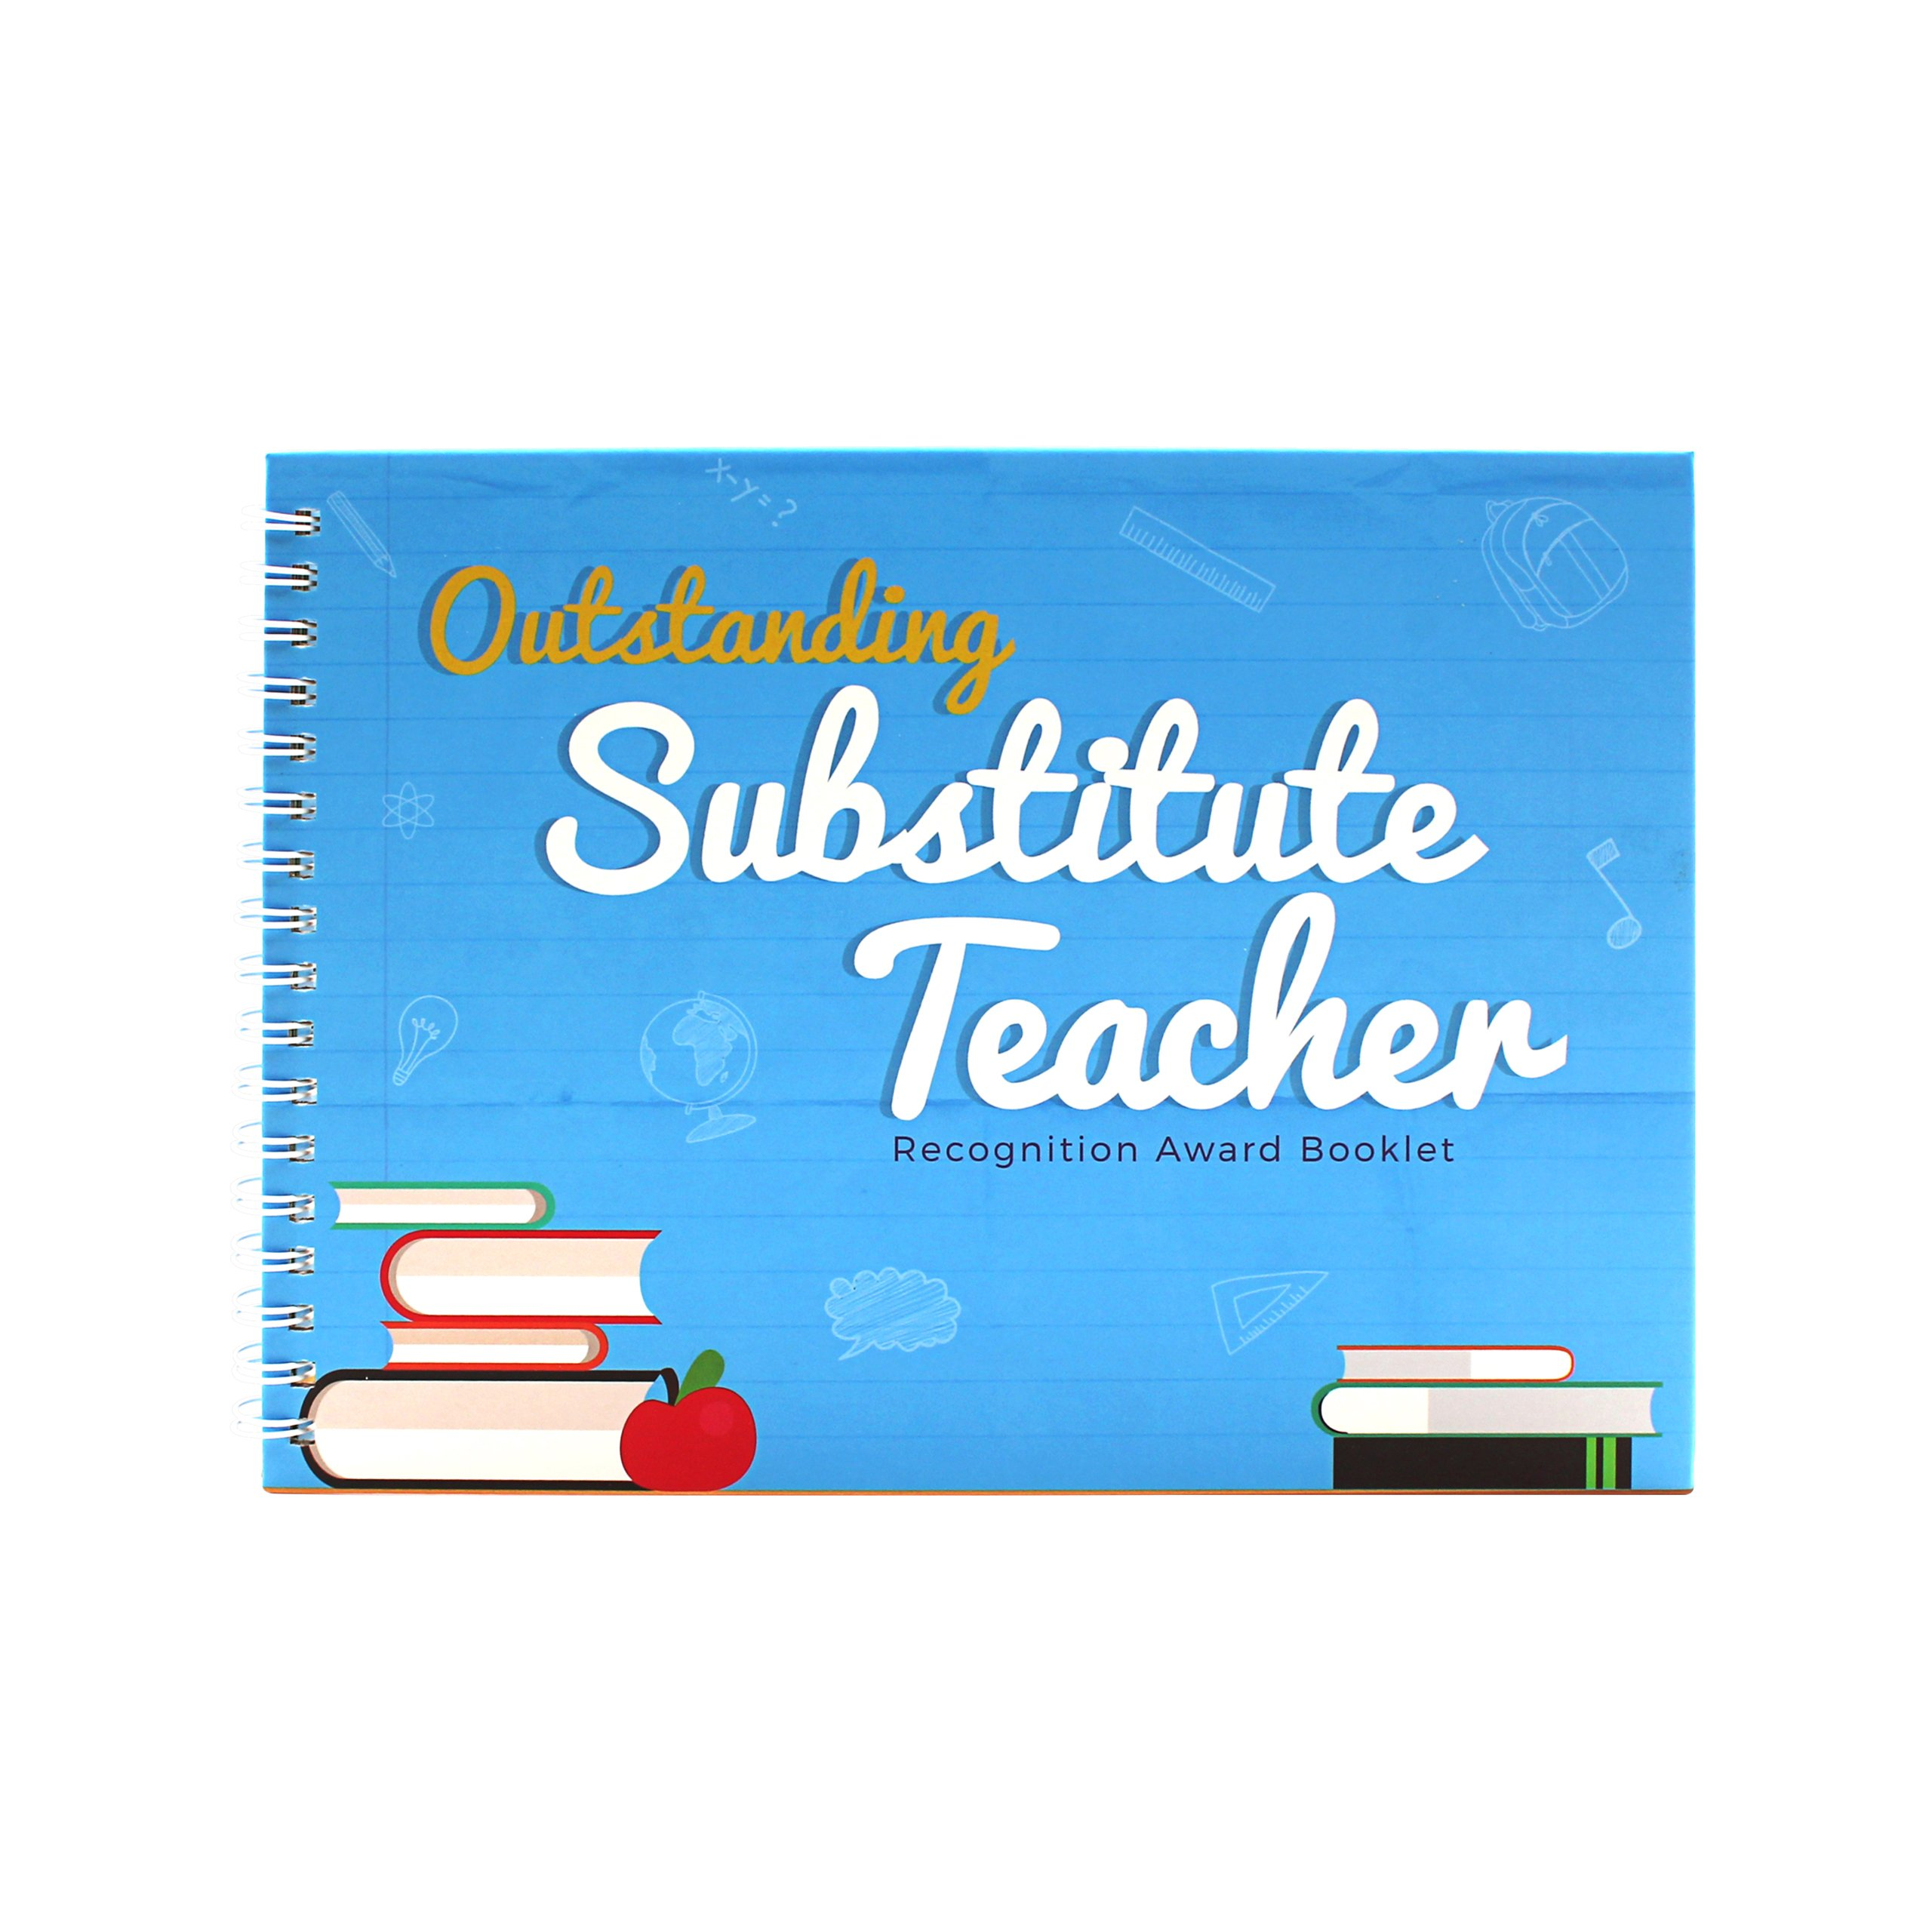 Outstanding Substitute Teacher Edition - Recognition Award Booklet - This Memory Book contains Funny Designs And Original Quotes is The Perfect Gift For Your Favorite Teacher - Comes with Stickers